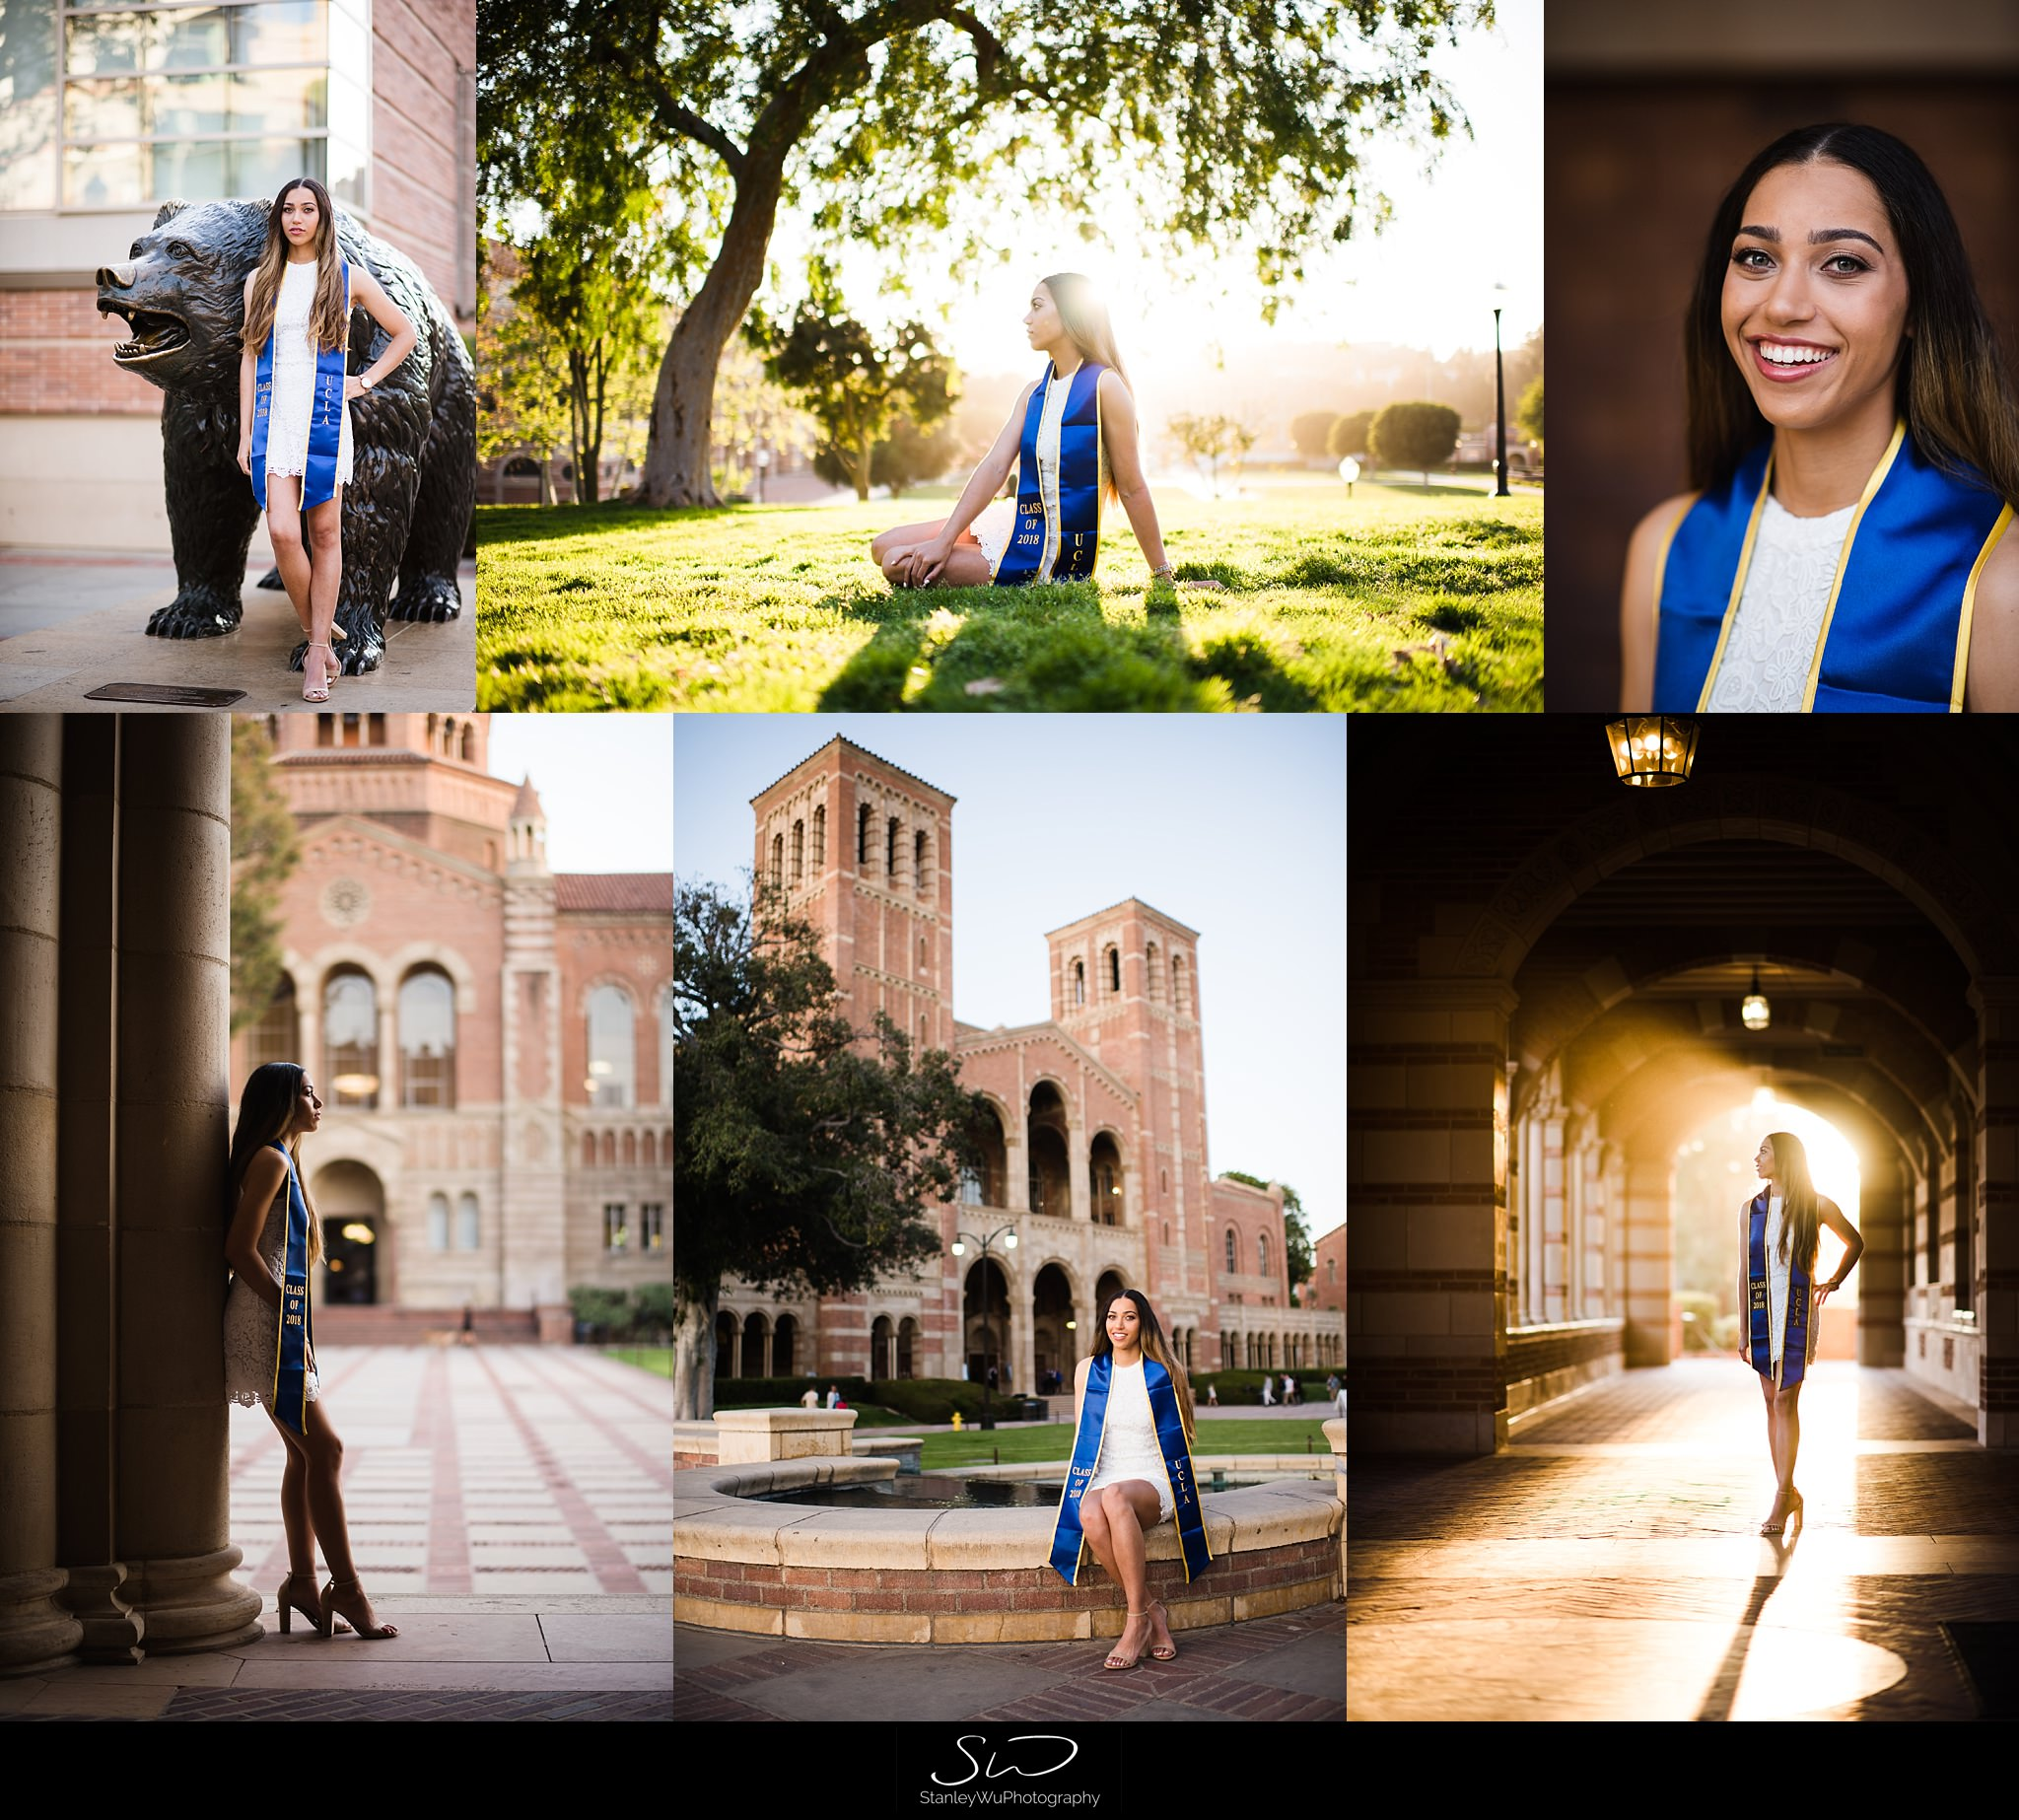 los-angeles-ucla-graduation-senior-portraits_0001.jpg